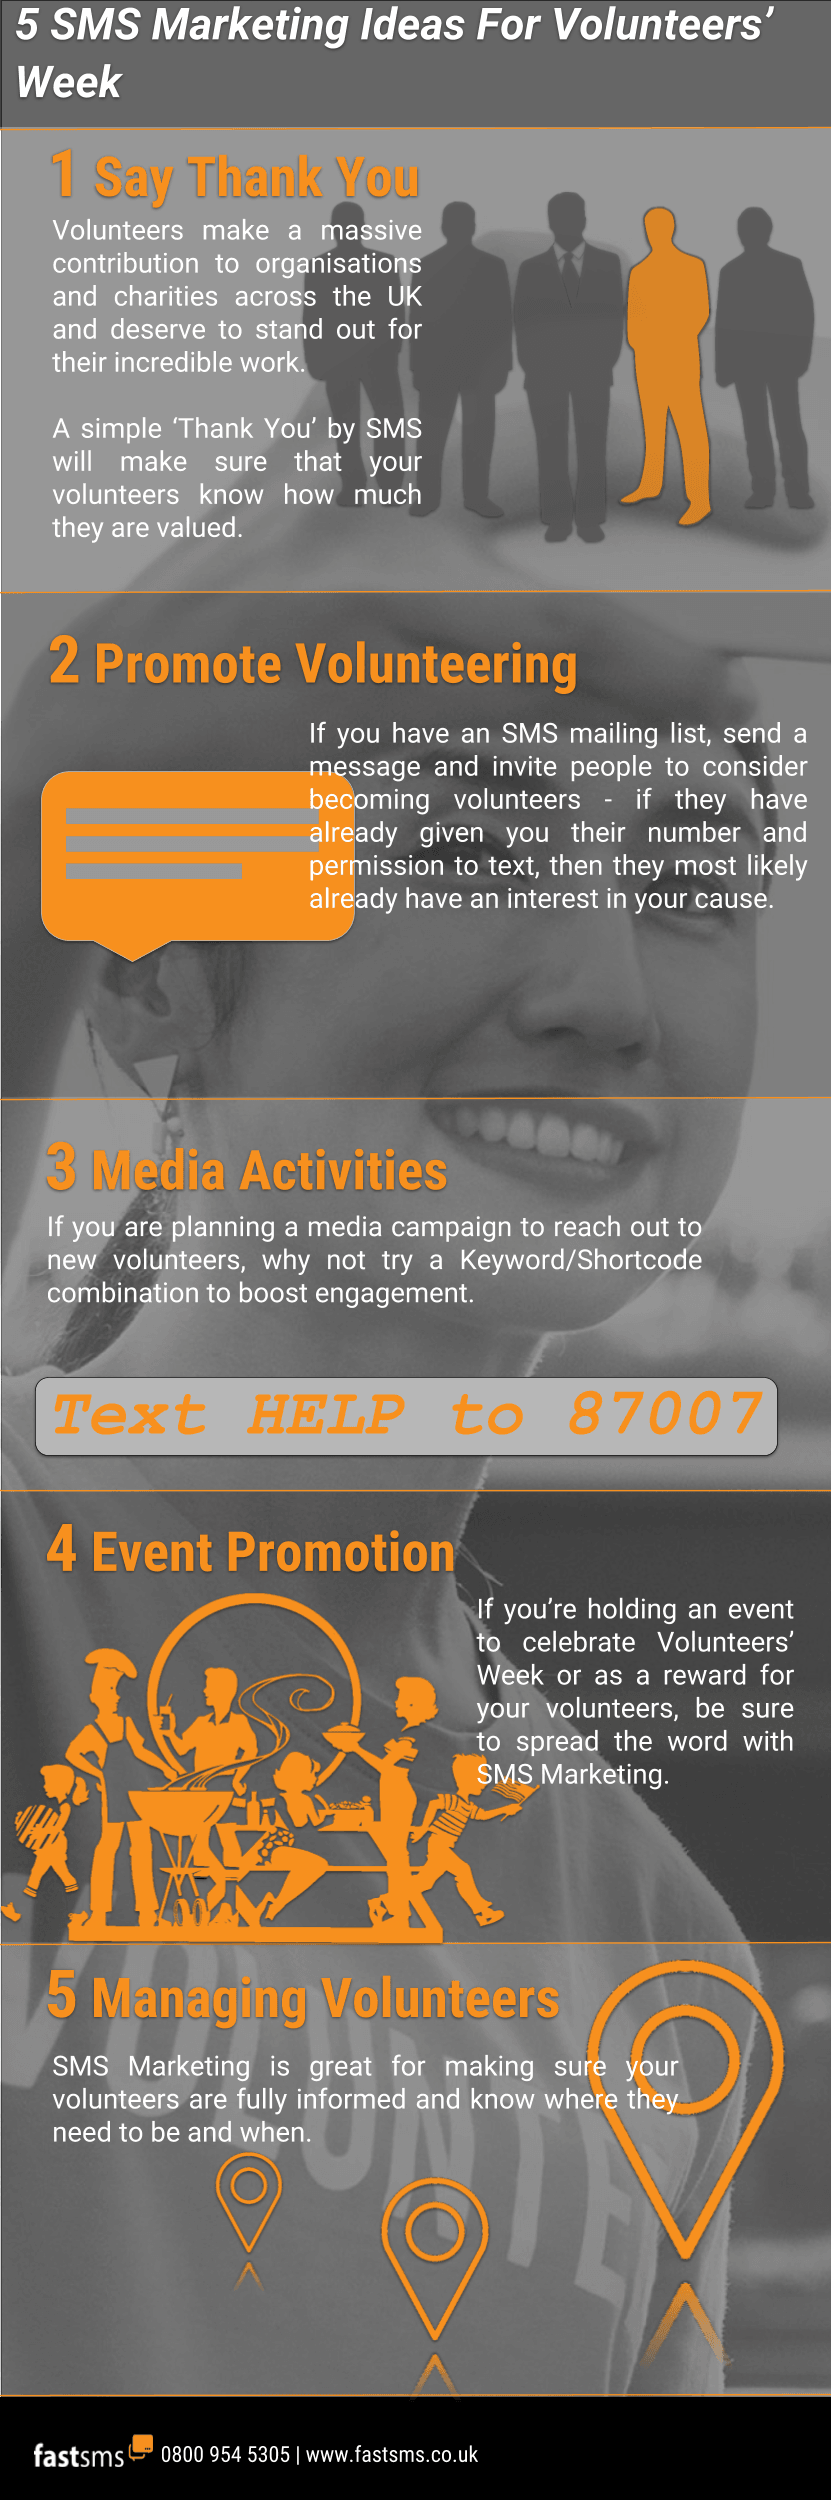 5 SMS Marketing Ideas For Volunteers Week - Infographic | Fastsms